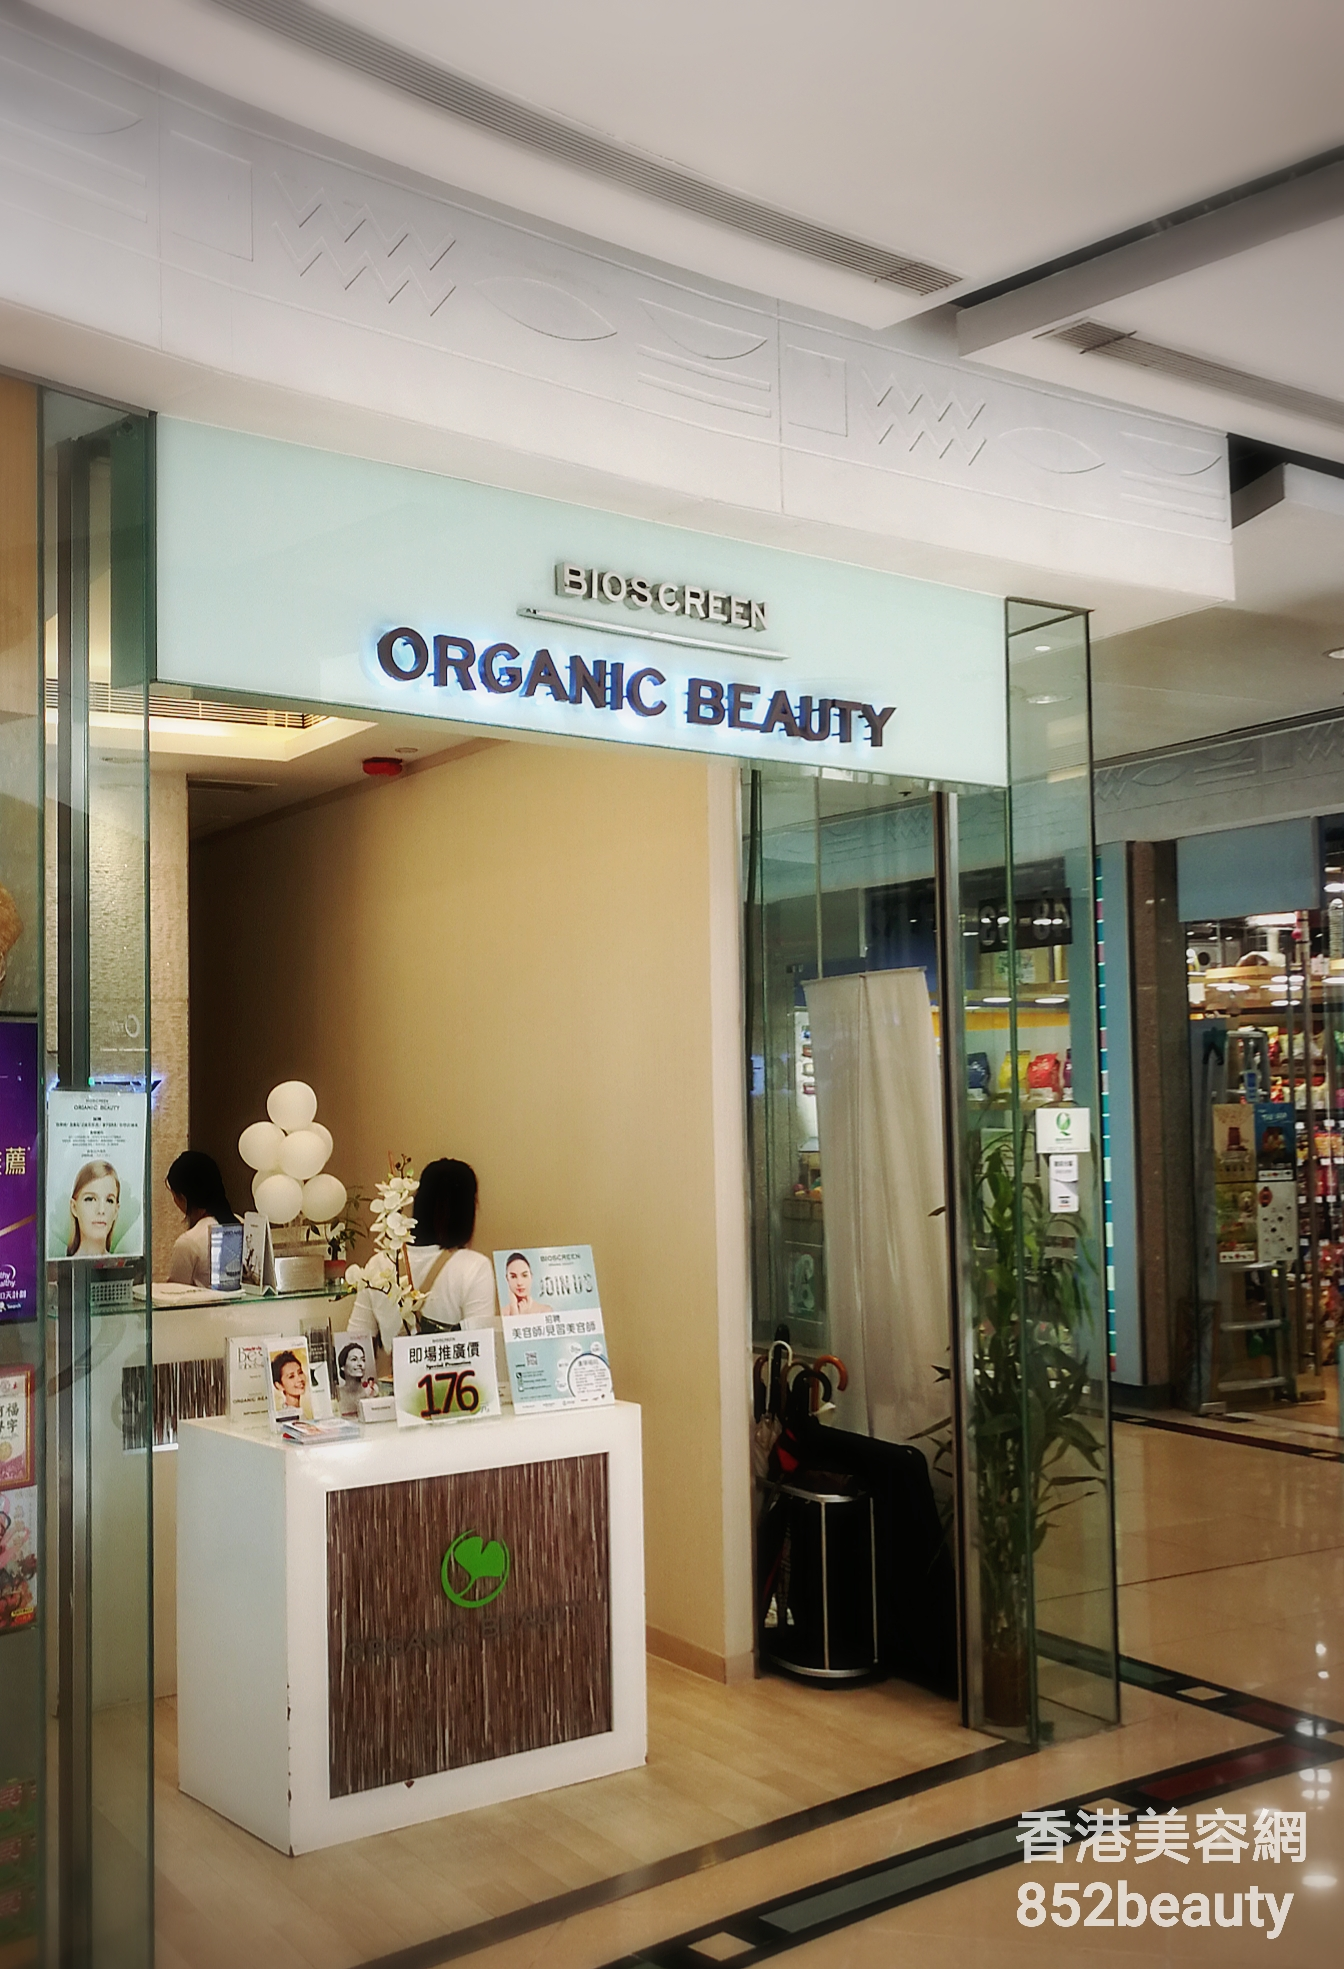 美容院: BIOSCREEN ORGANIC BEAUTY (新都城店)